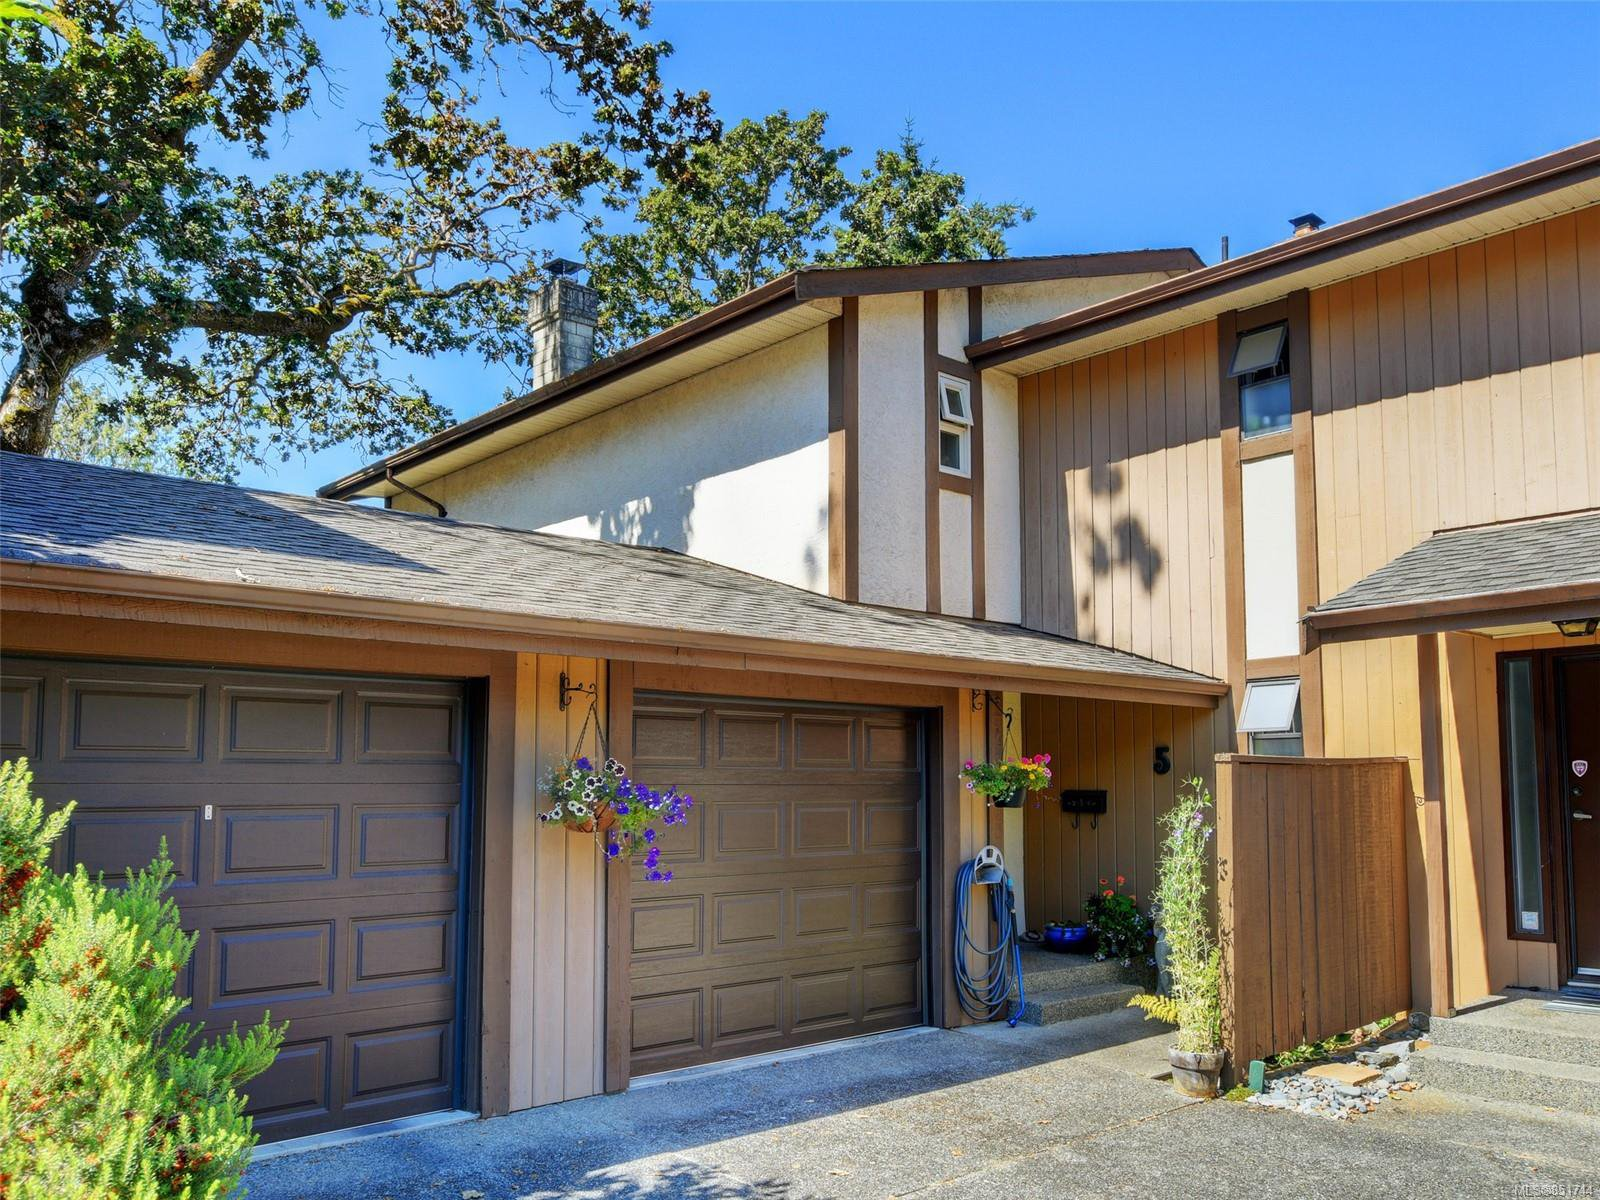 Main Photo: 5 1096 Stoba Lane in : SE Quadra Row/Townhouse for sale (Saanich East)  : MLS®# 851744